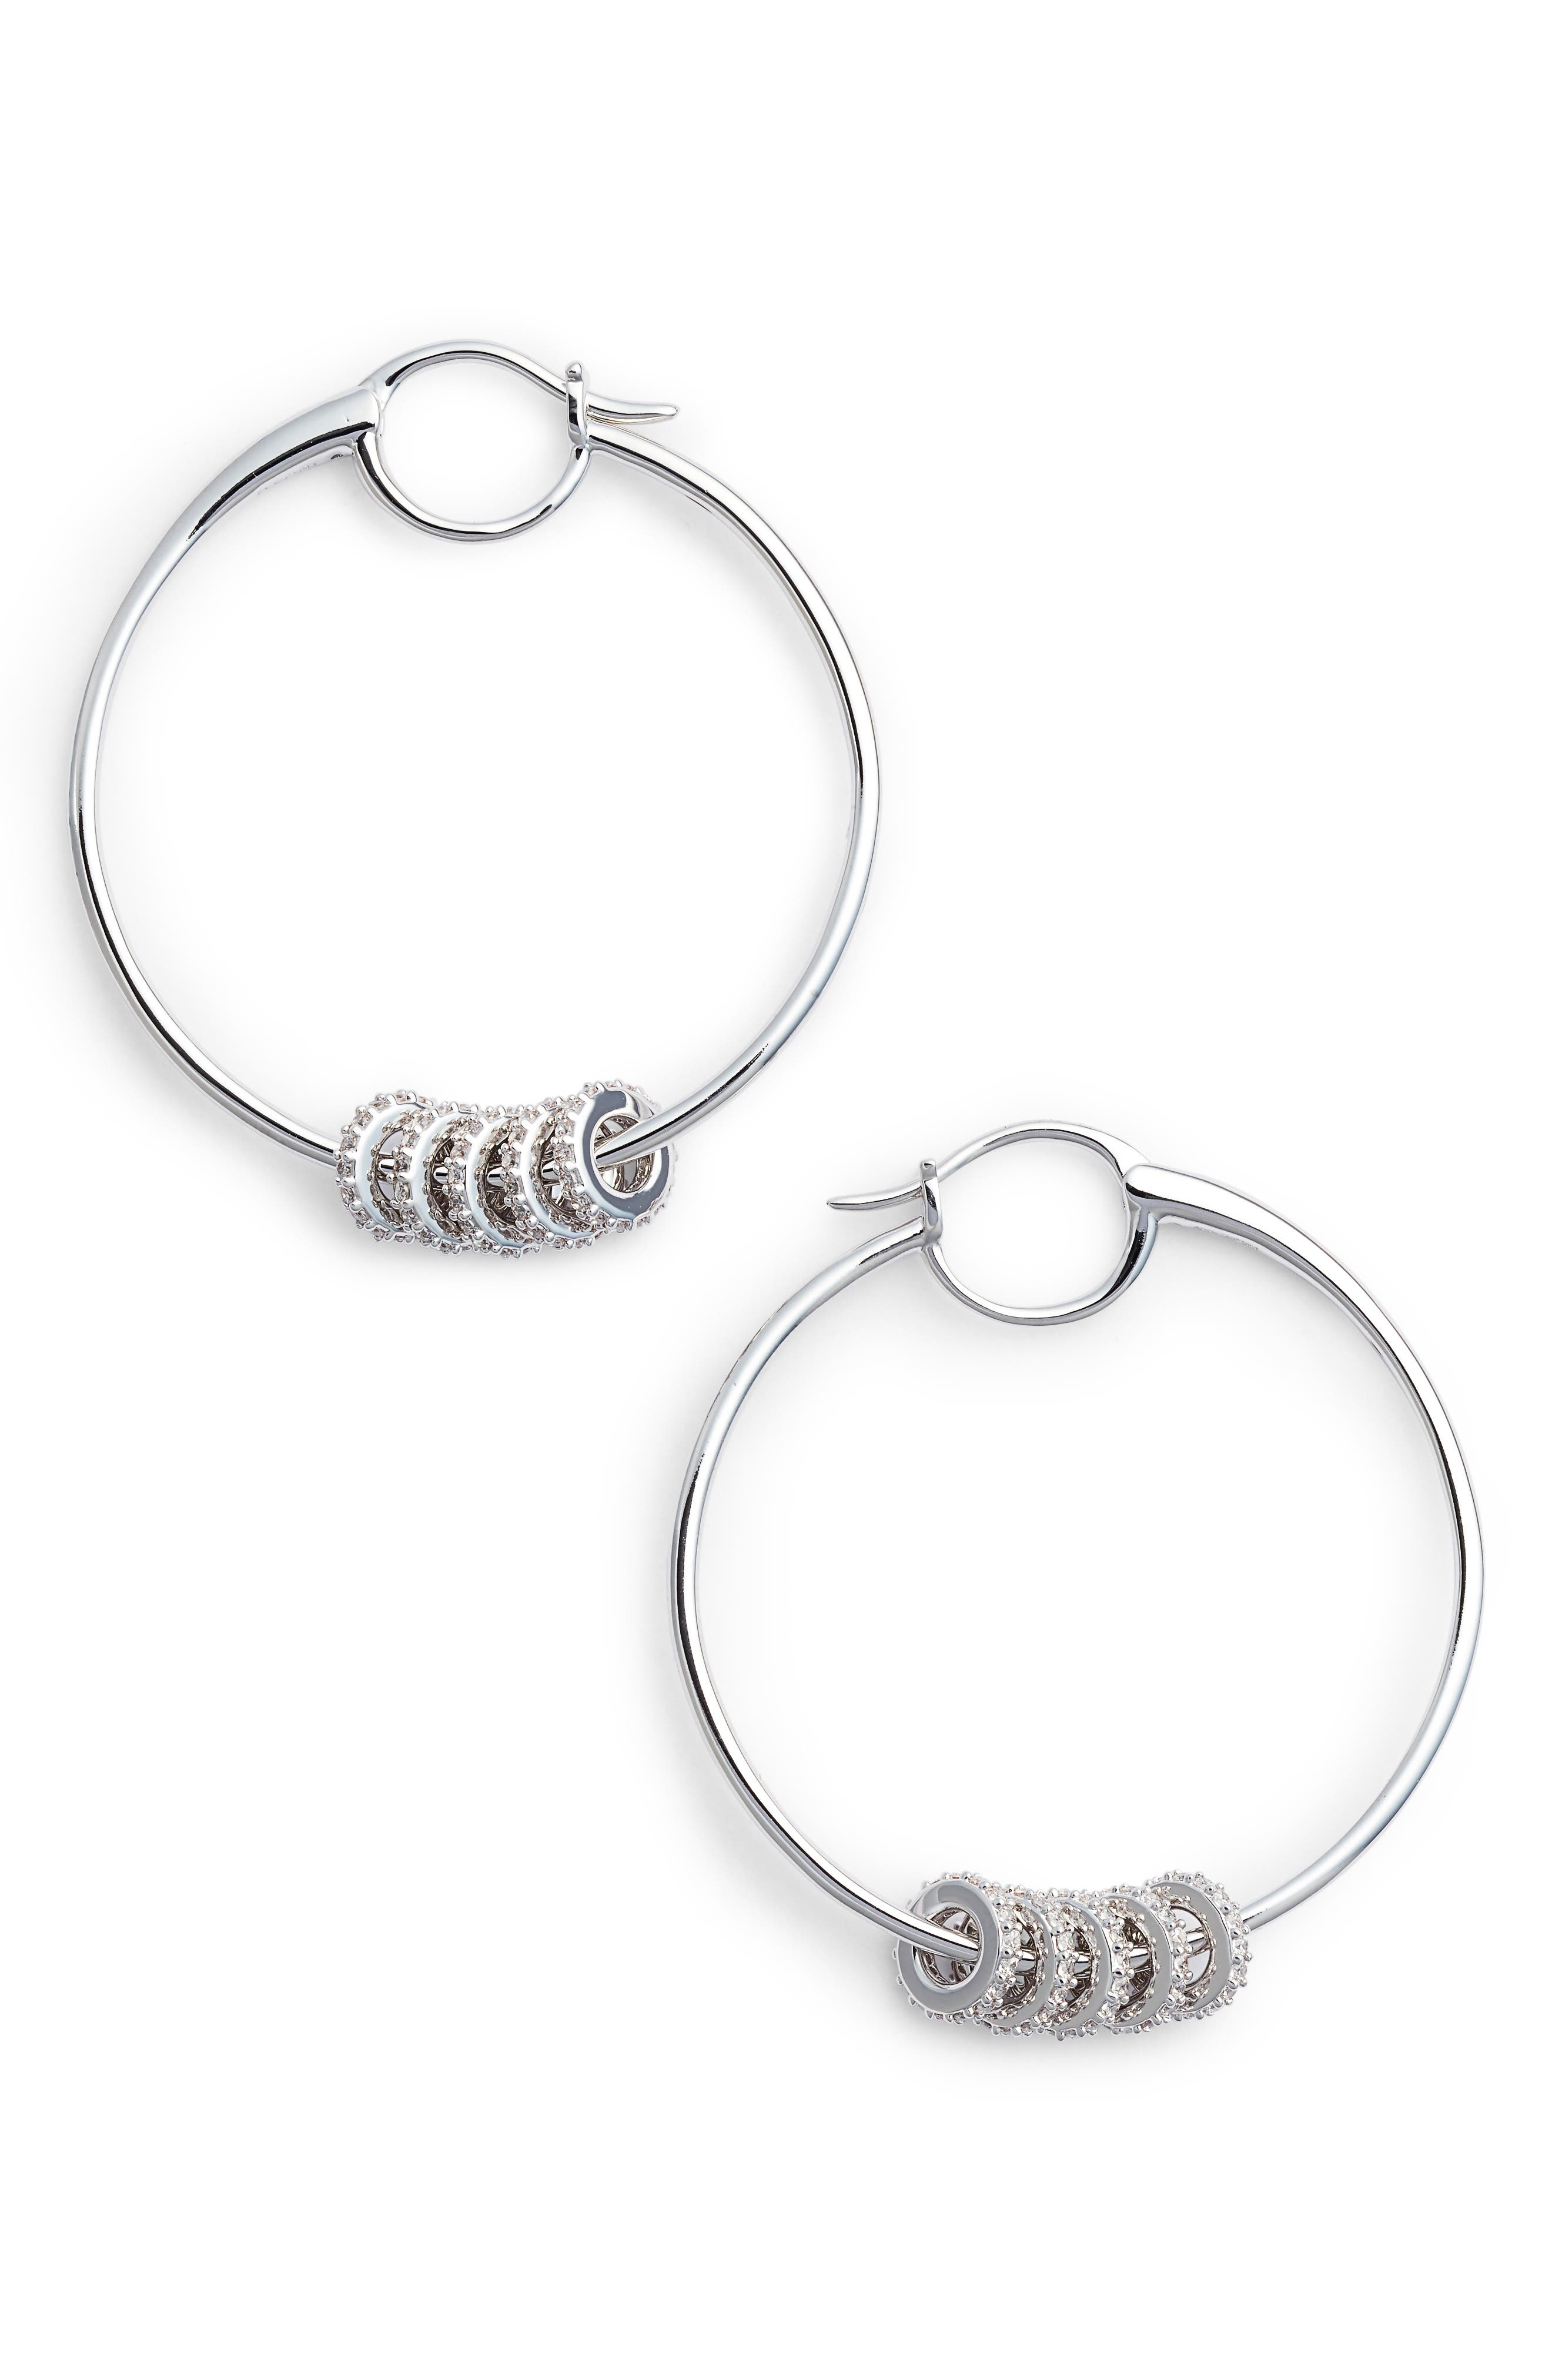 Hoop Earrings,                         Main,                         color, SILVER